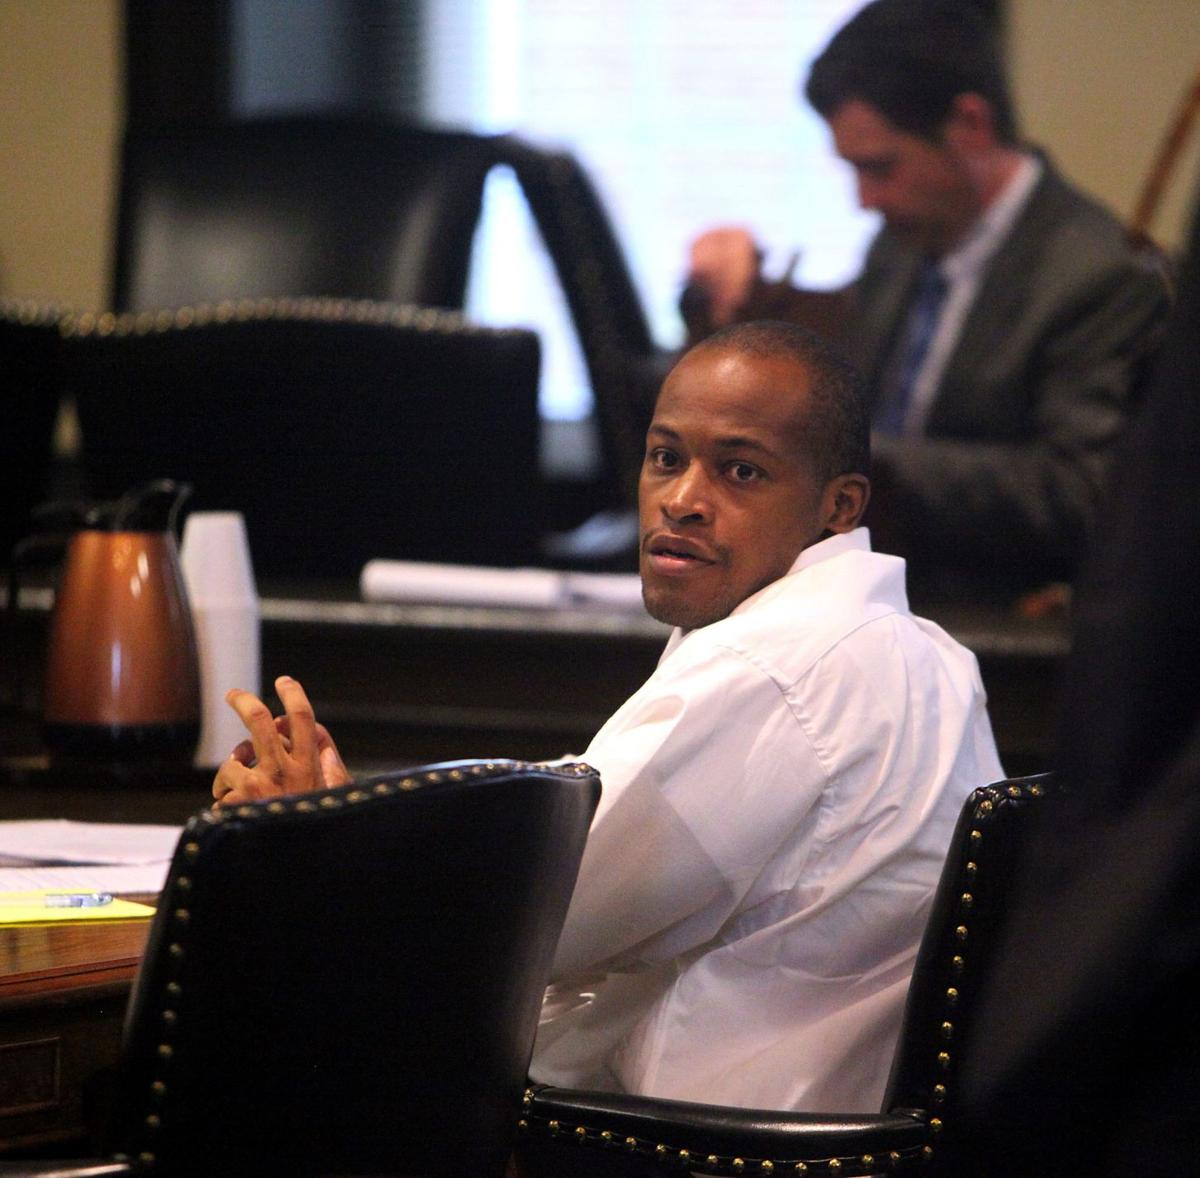 Williams' voice heard in phone call recording from jail